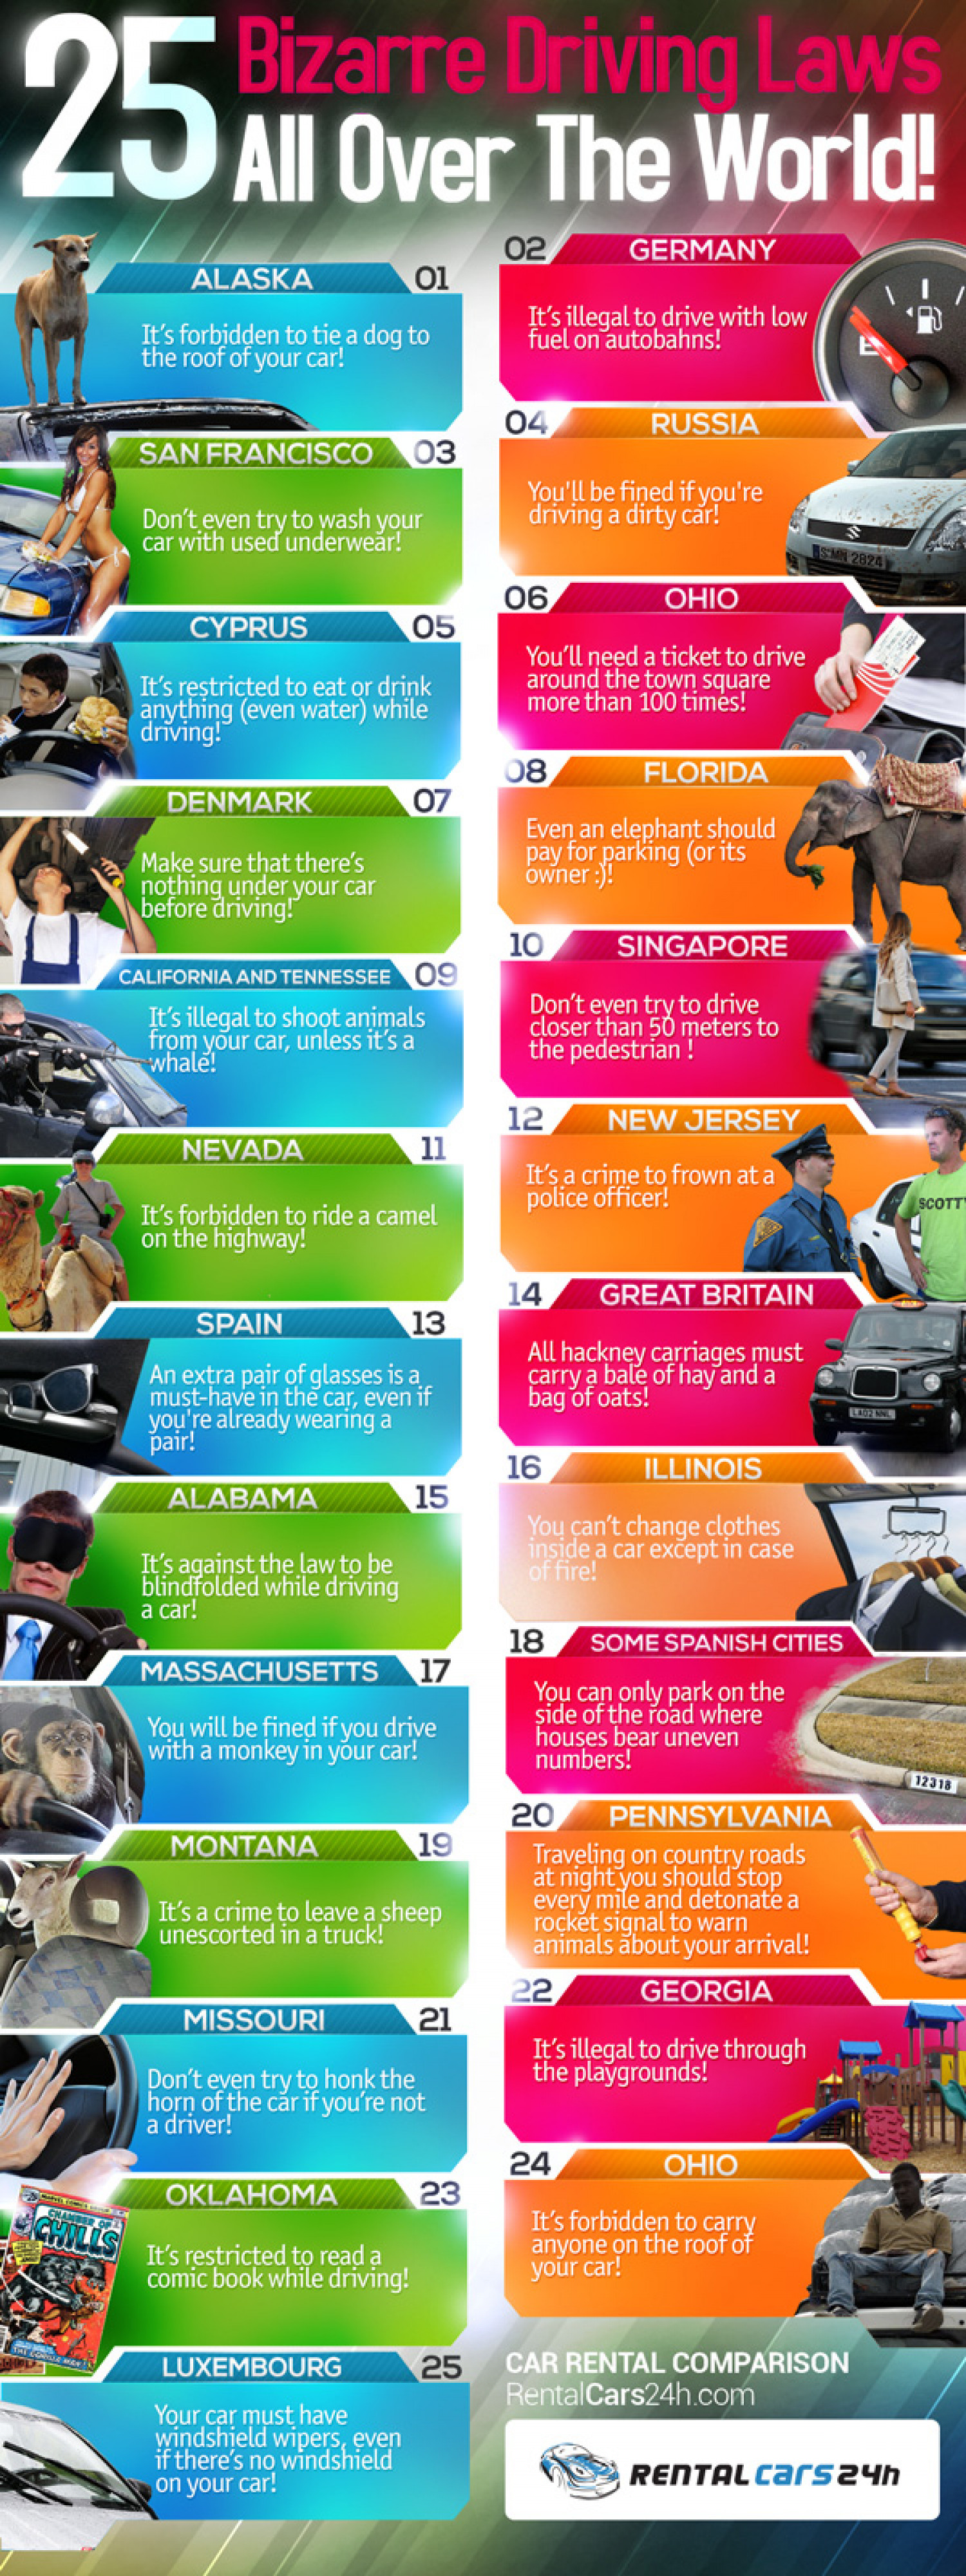 25 Bizarre Driving Laws All Over The World Infographic